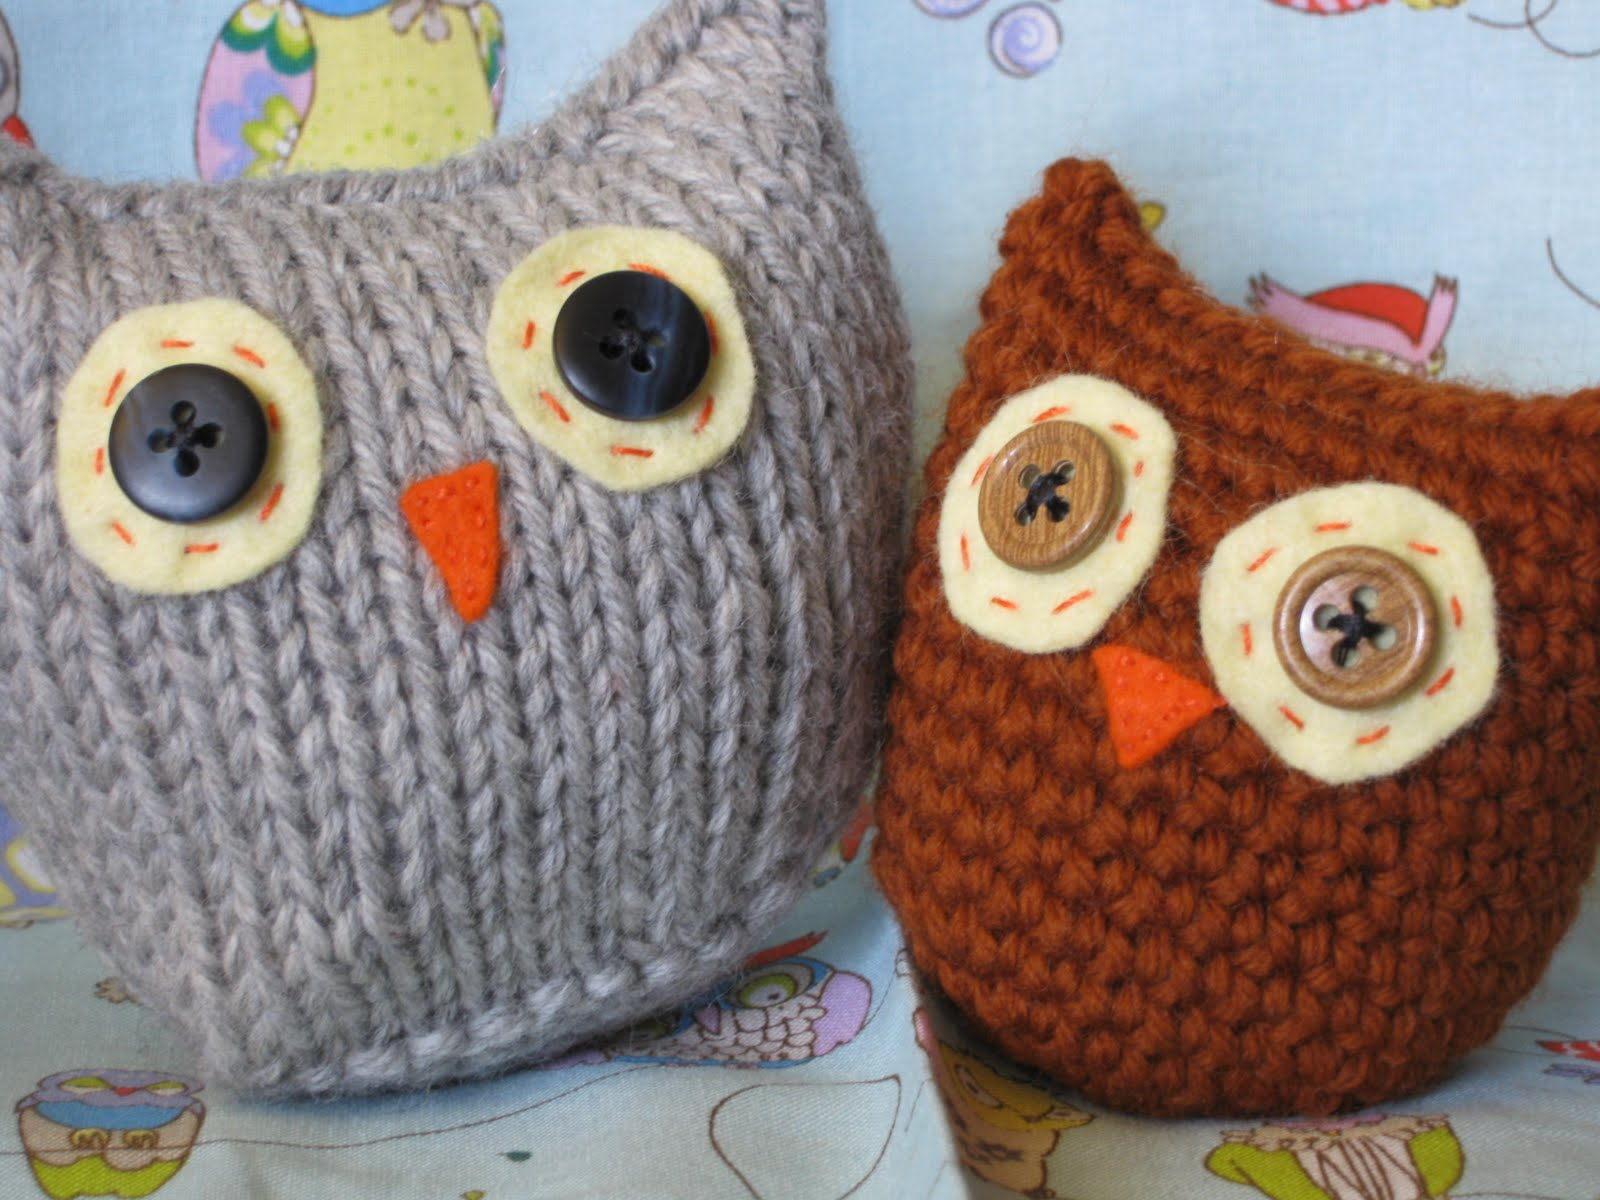 Bernat: Pattern Detail - Satin - Owl Toy (crochet)